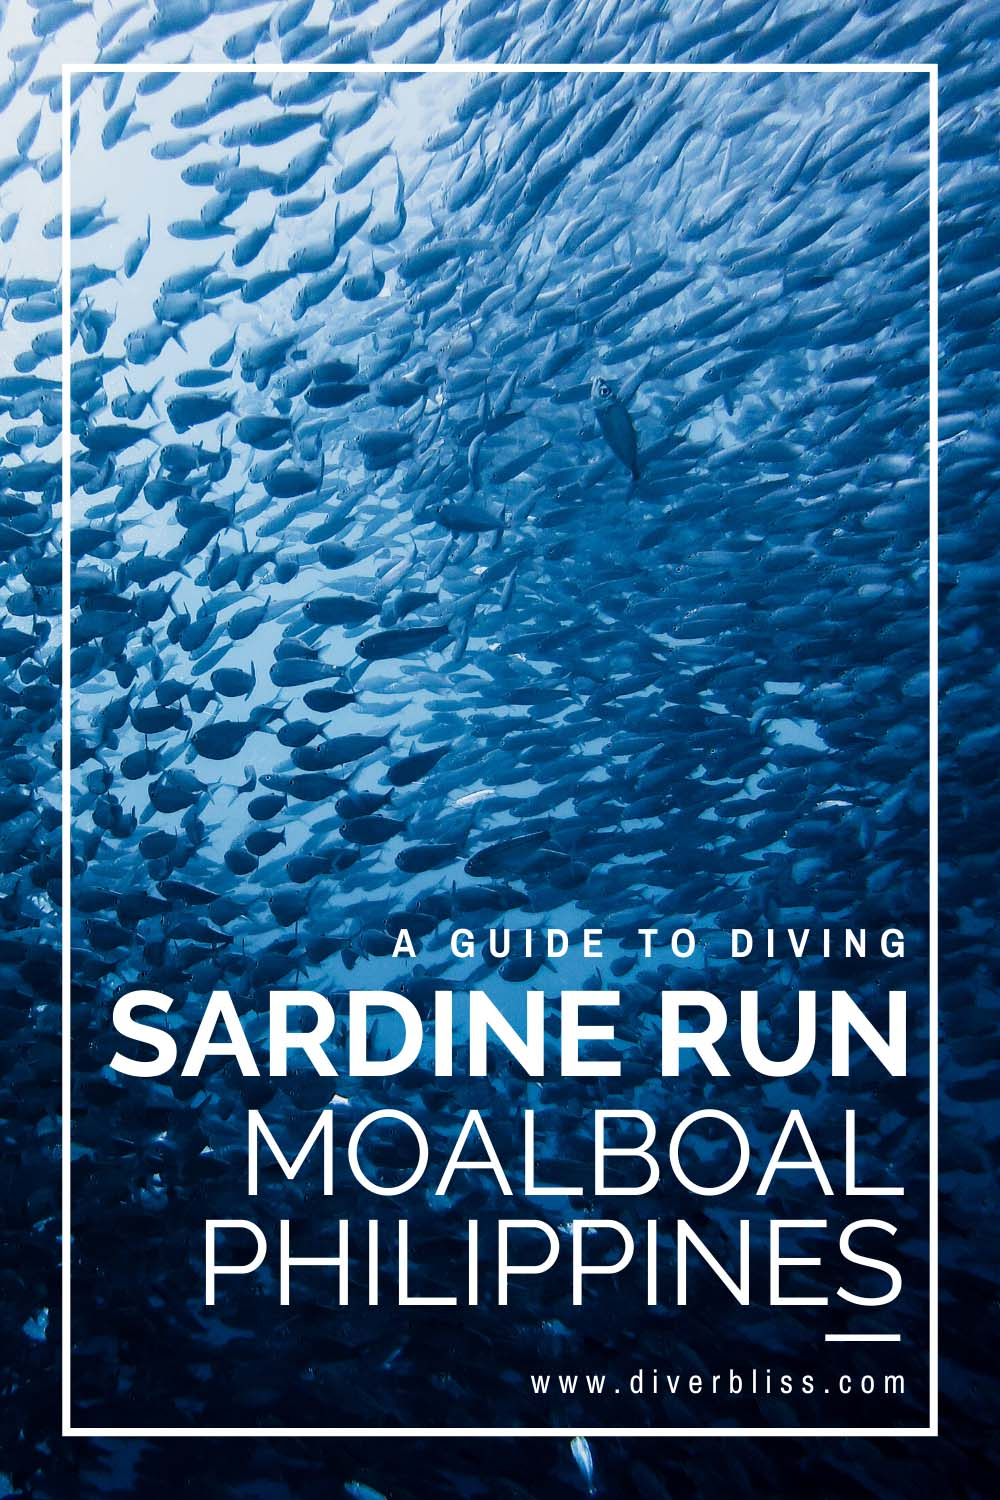 A guide to diving the sardine run in Moalboal, Cebu, Philippines.